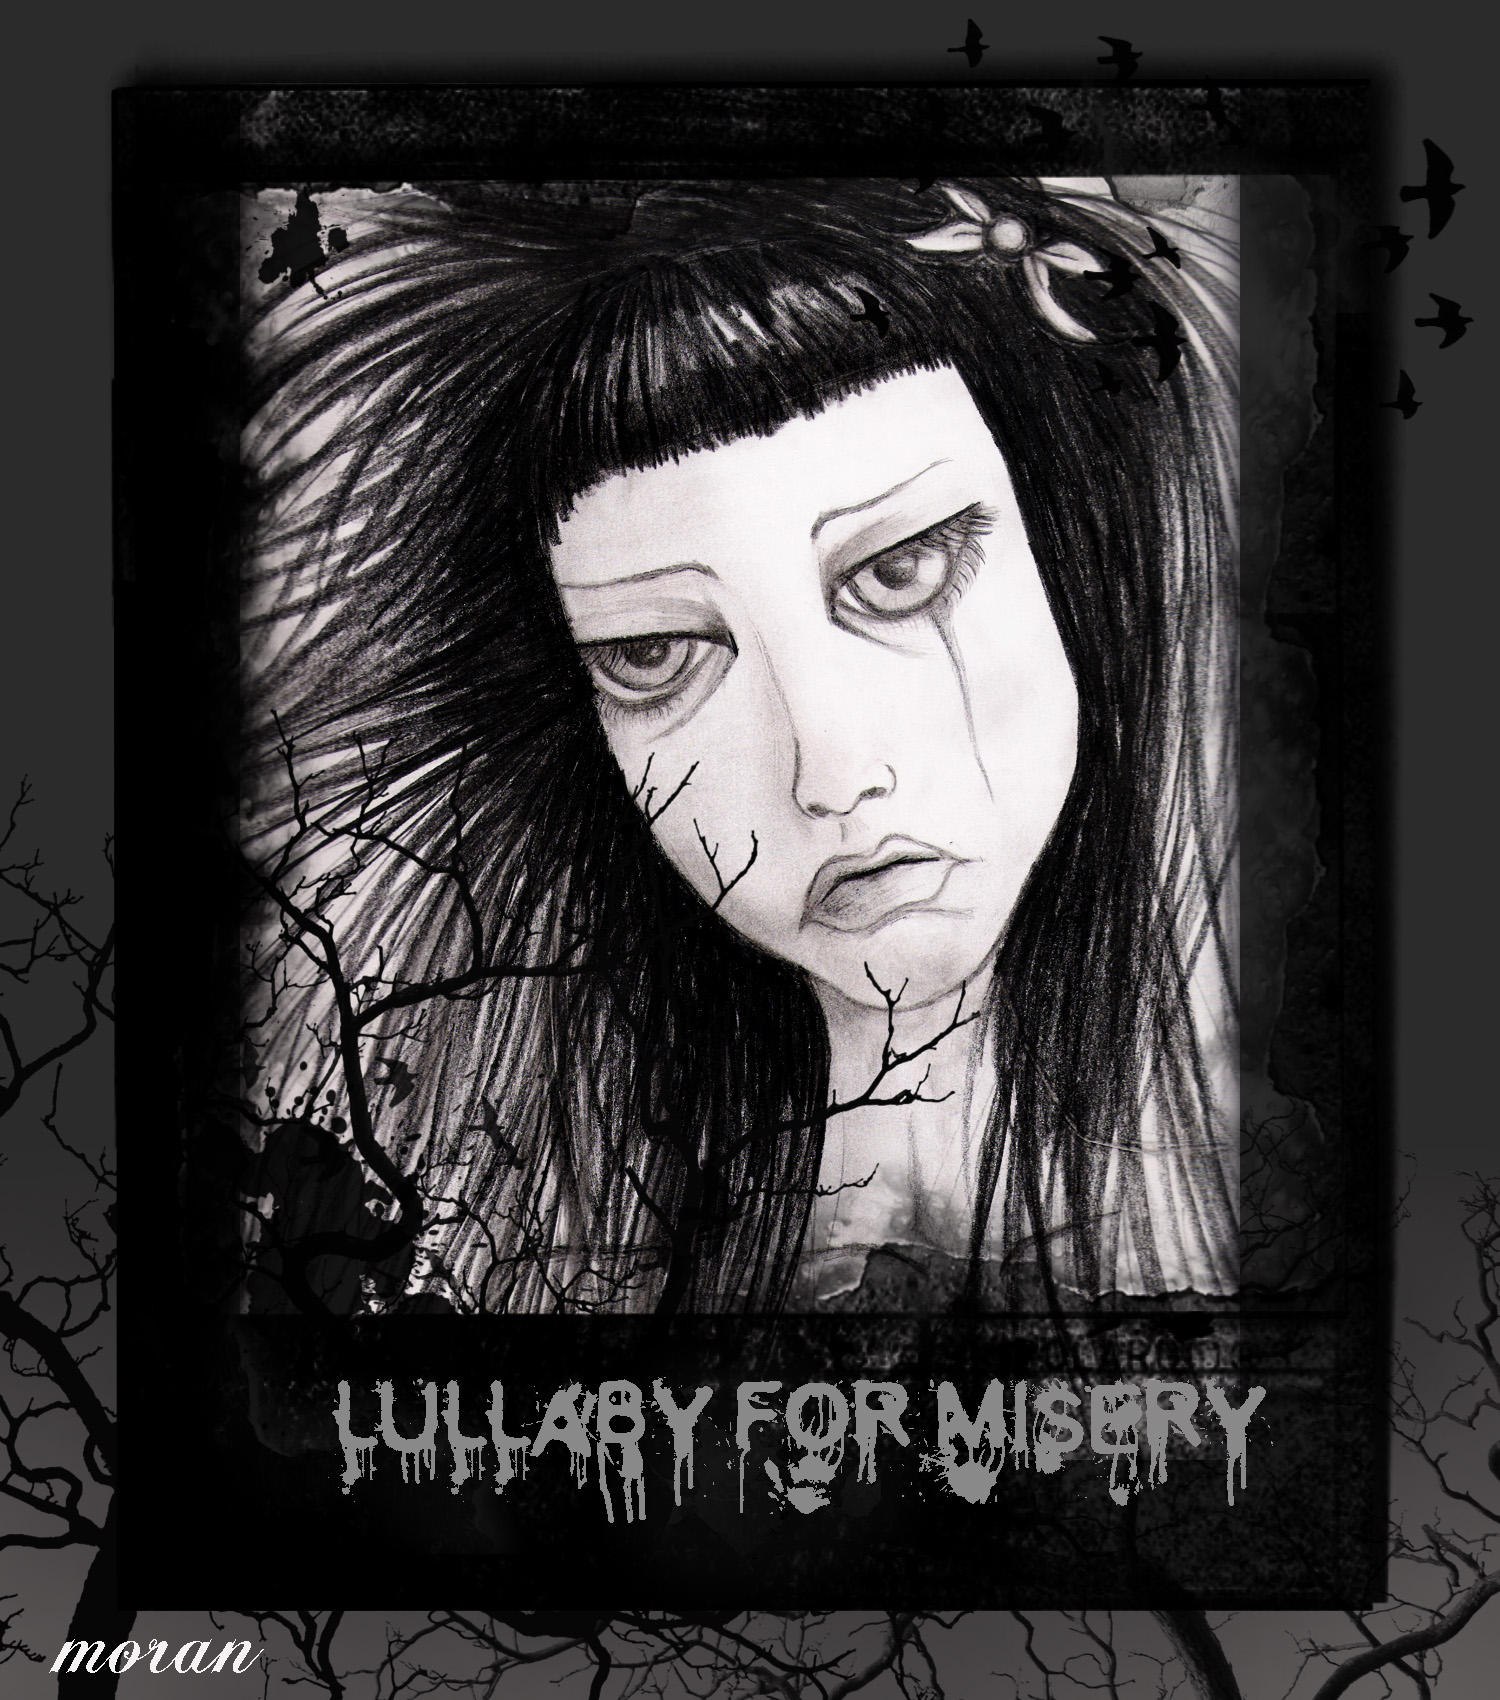 Lullaby for misery by Raptus-regaliter